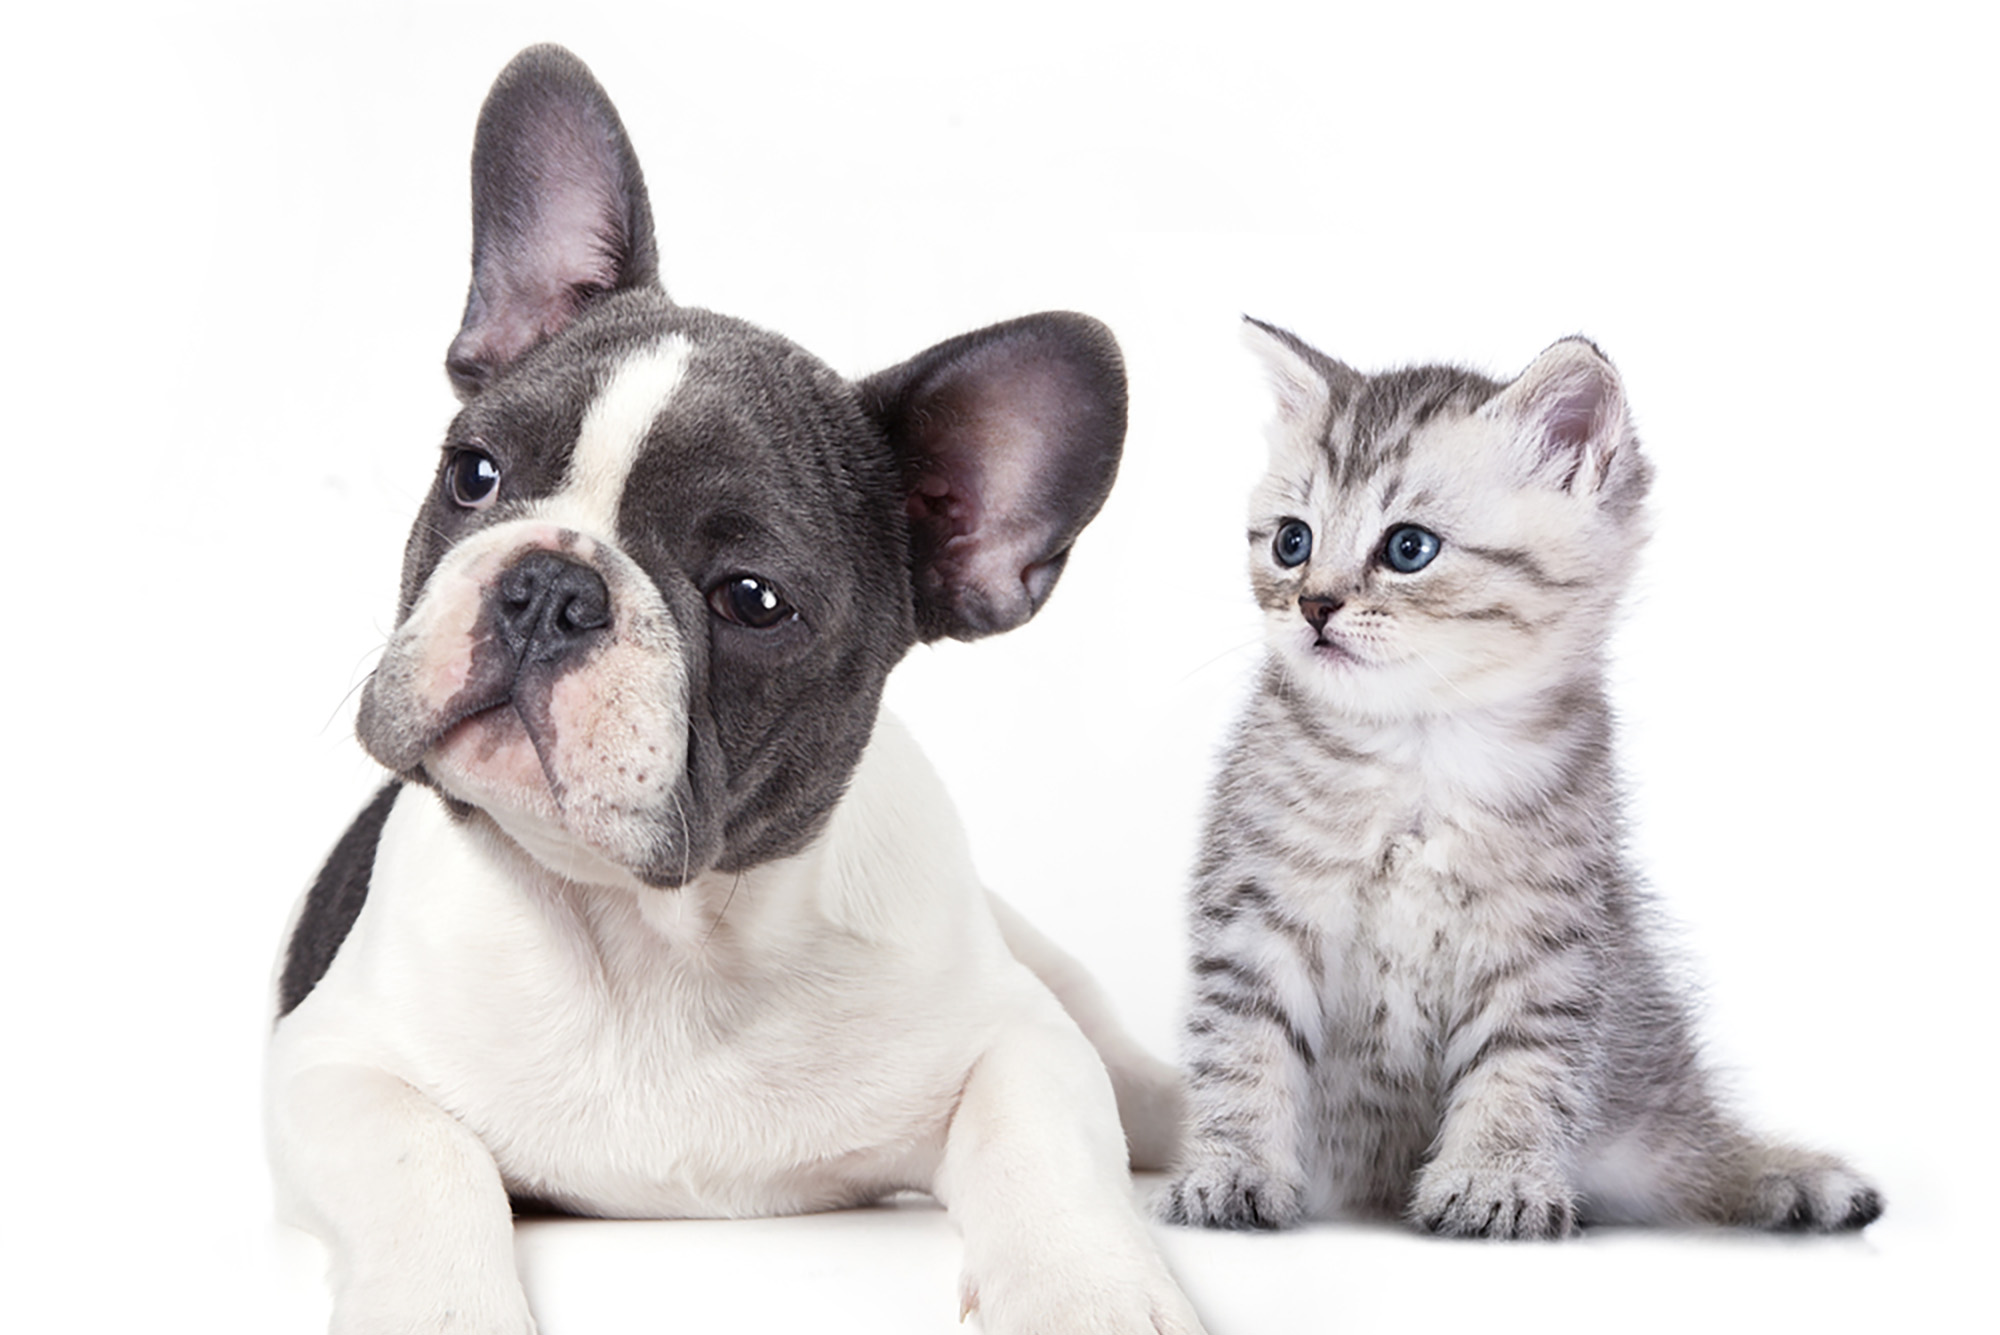 A bulldog and a kitten sitting together